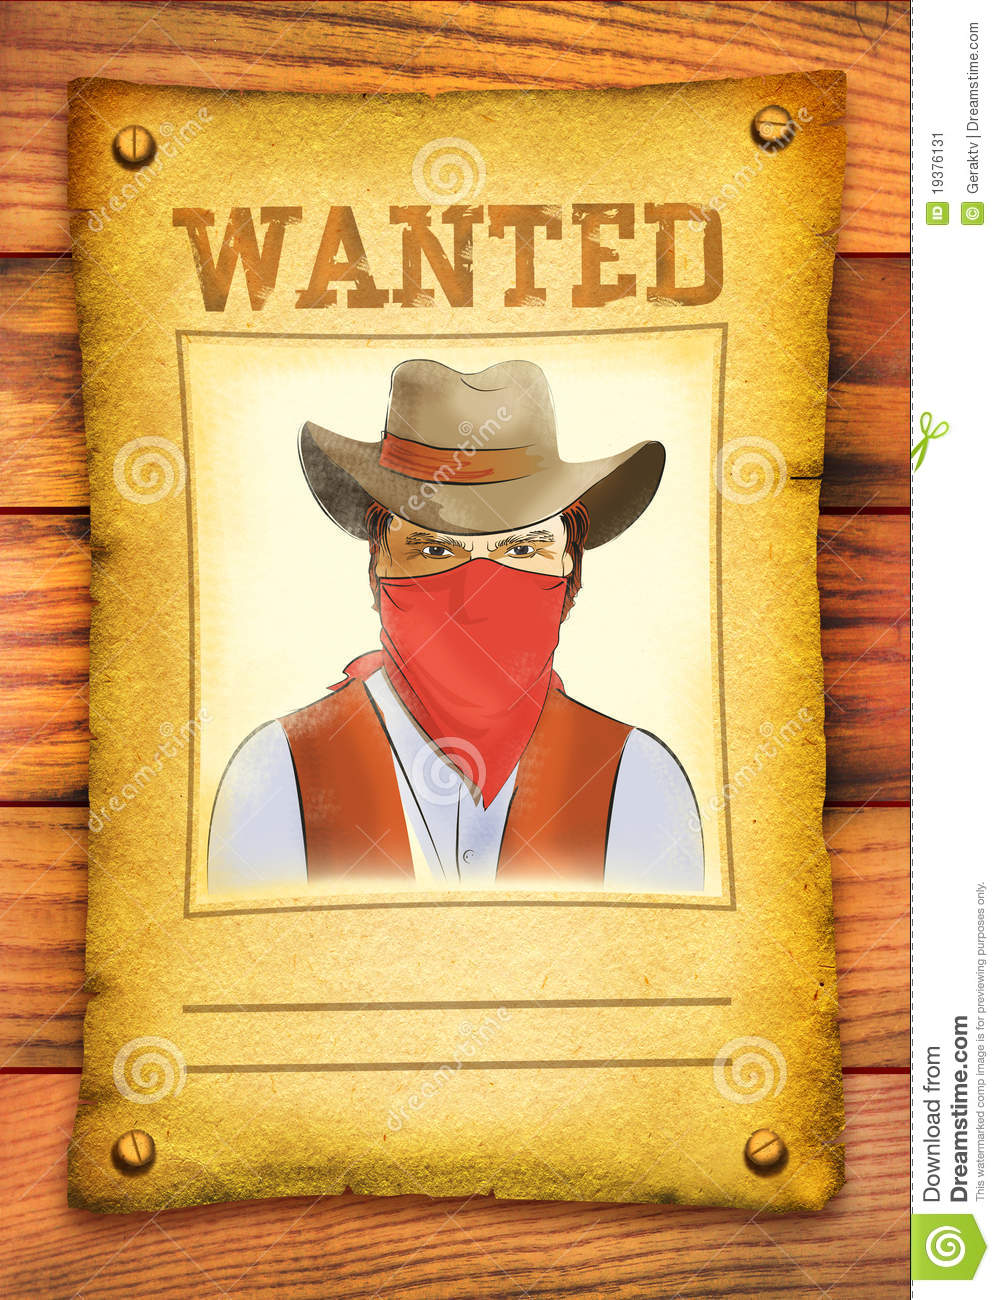 Wanted Poster With Bandit Face .-Wanted poster with bandit face .-19